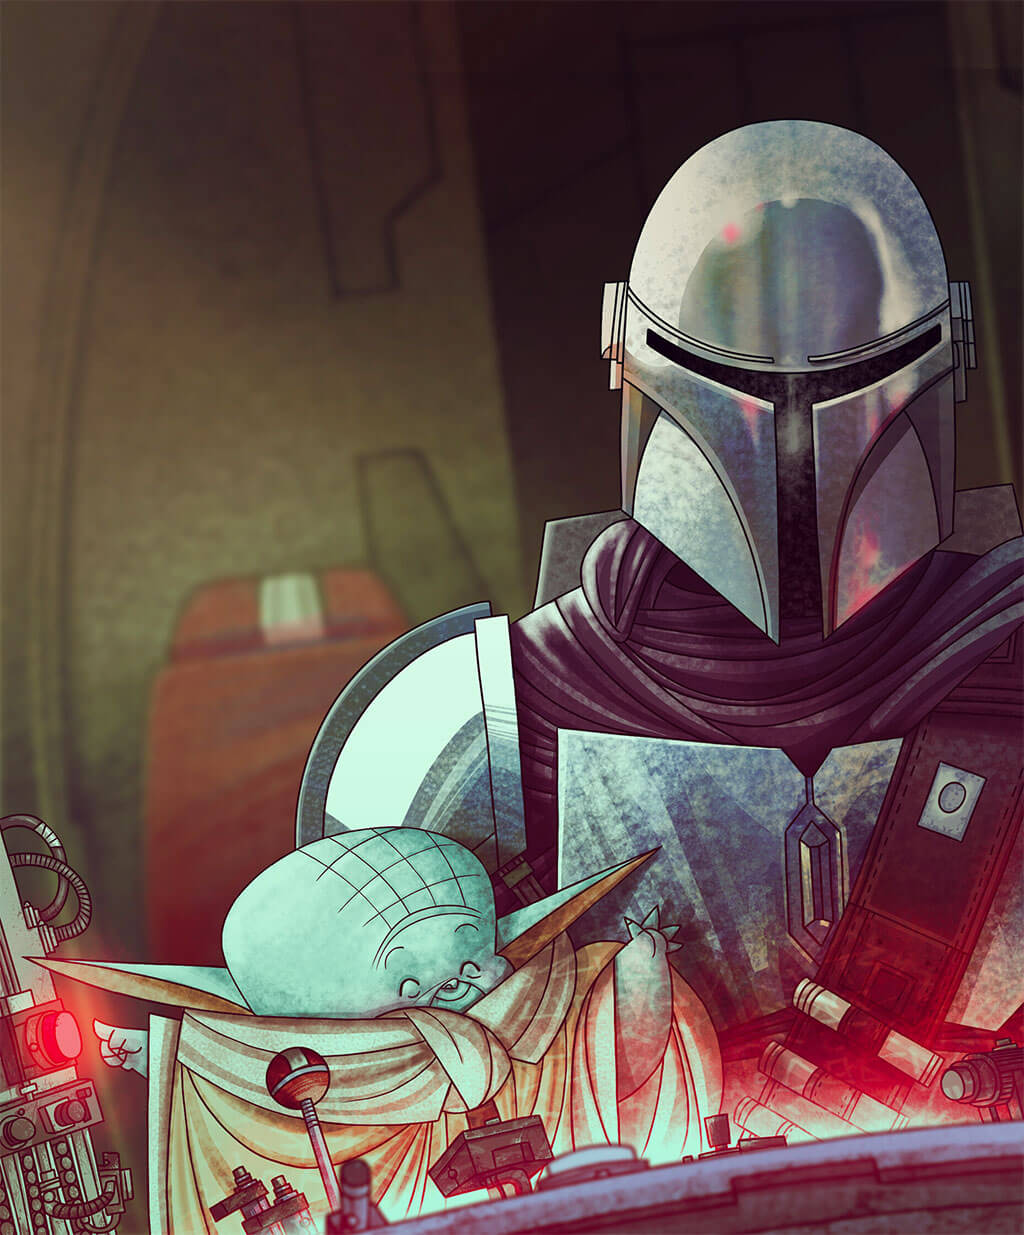 Mandalorian Fan Art by Ramon Pla